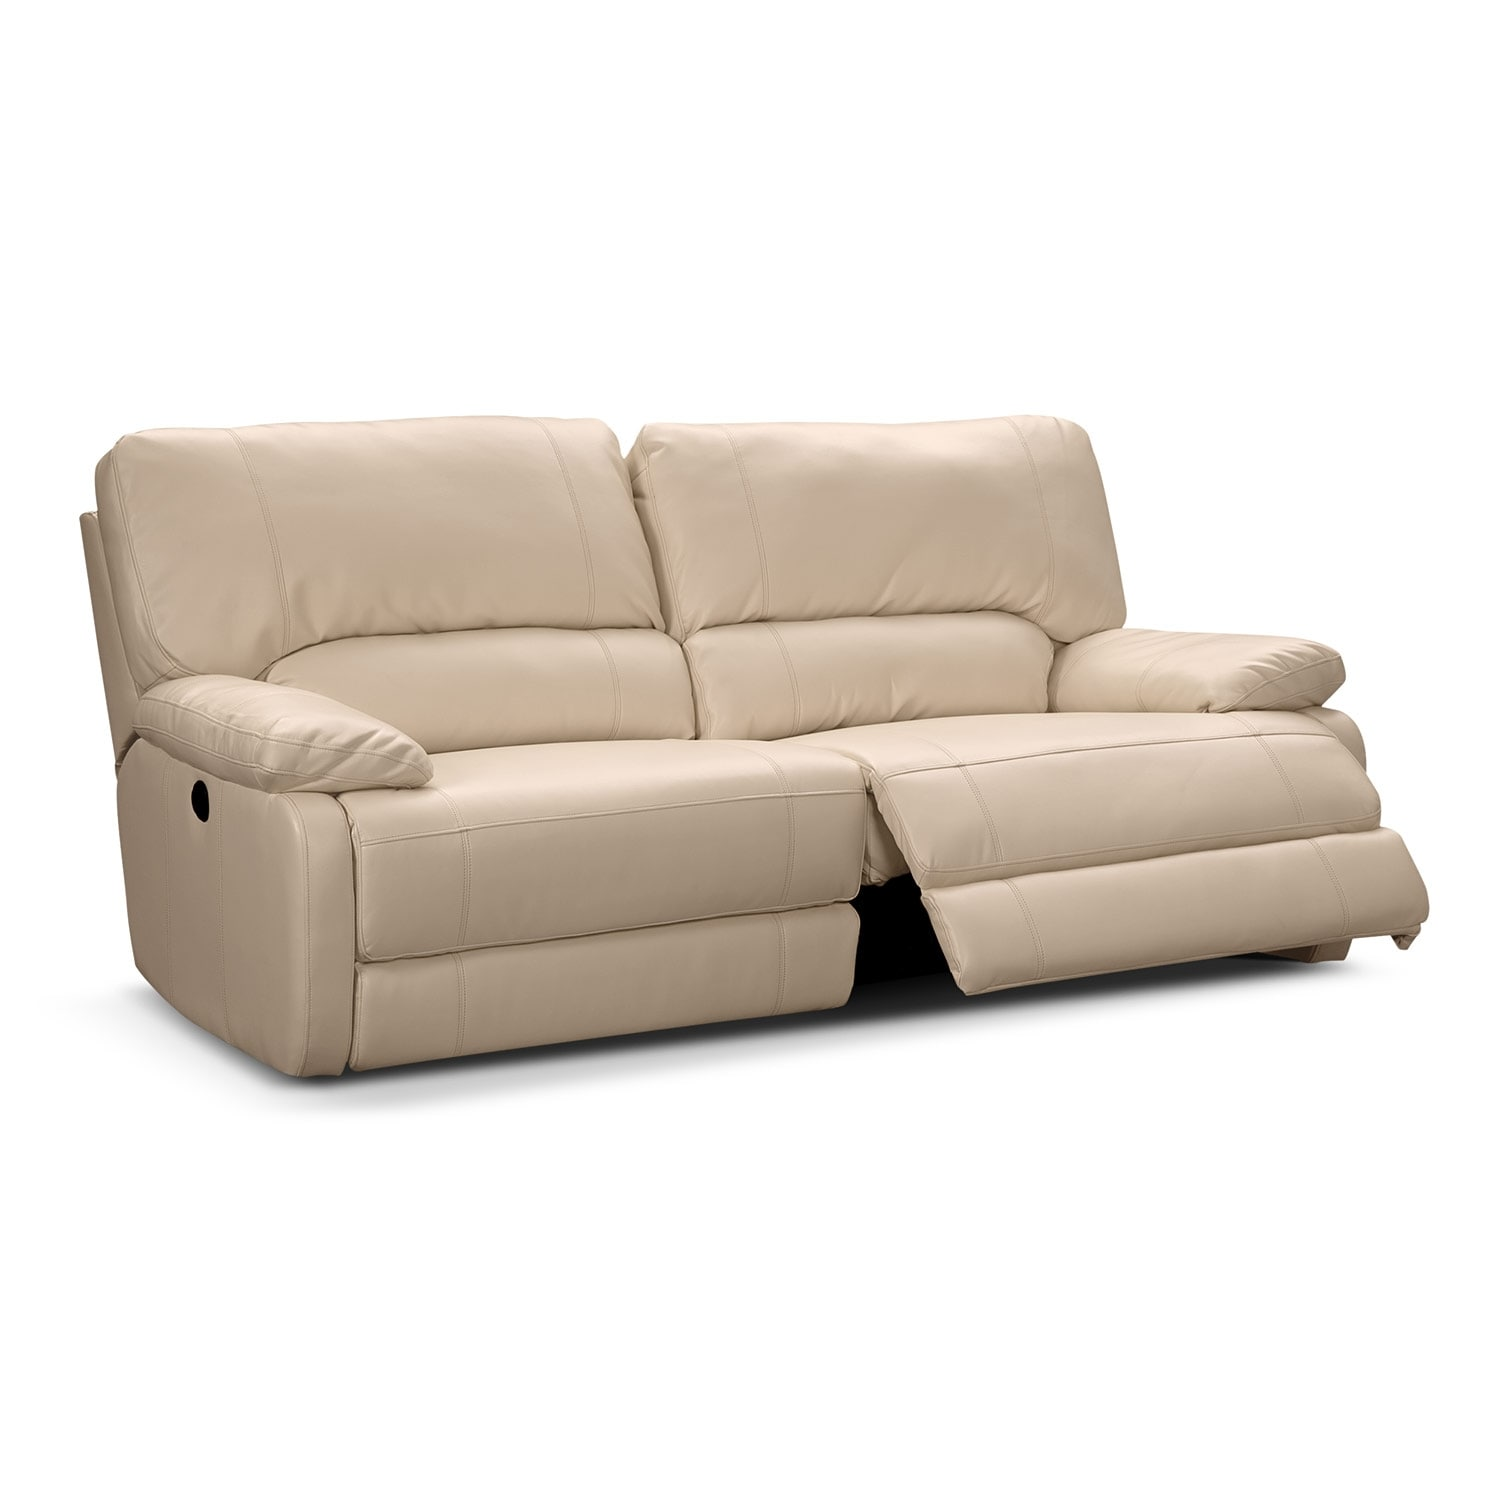 Coronado leather power reclining sofa value city furniture Leather sofa and loveseat recliner